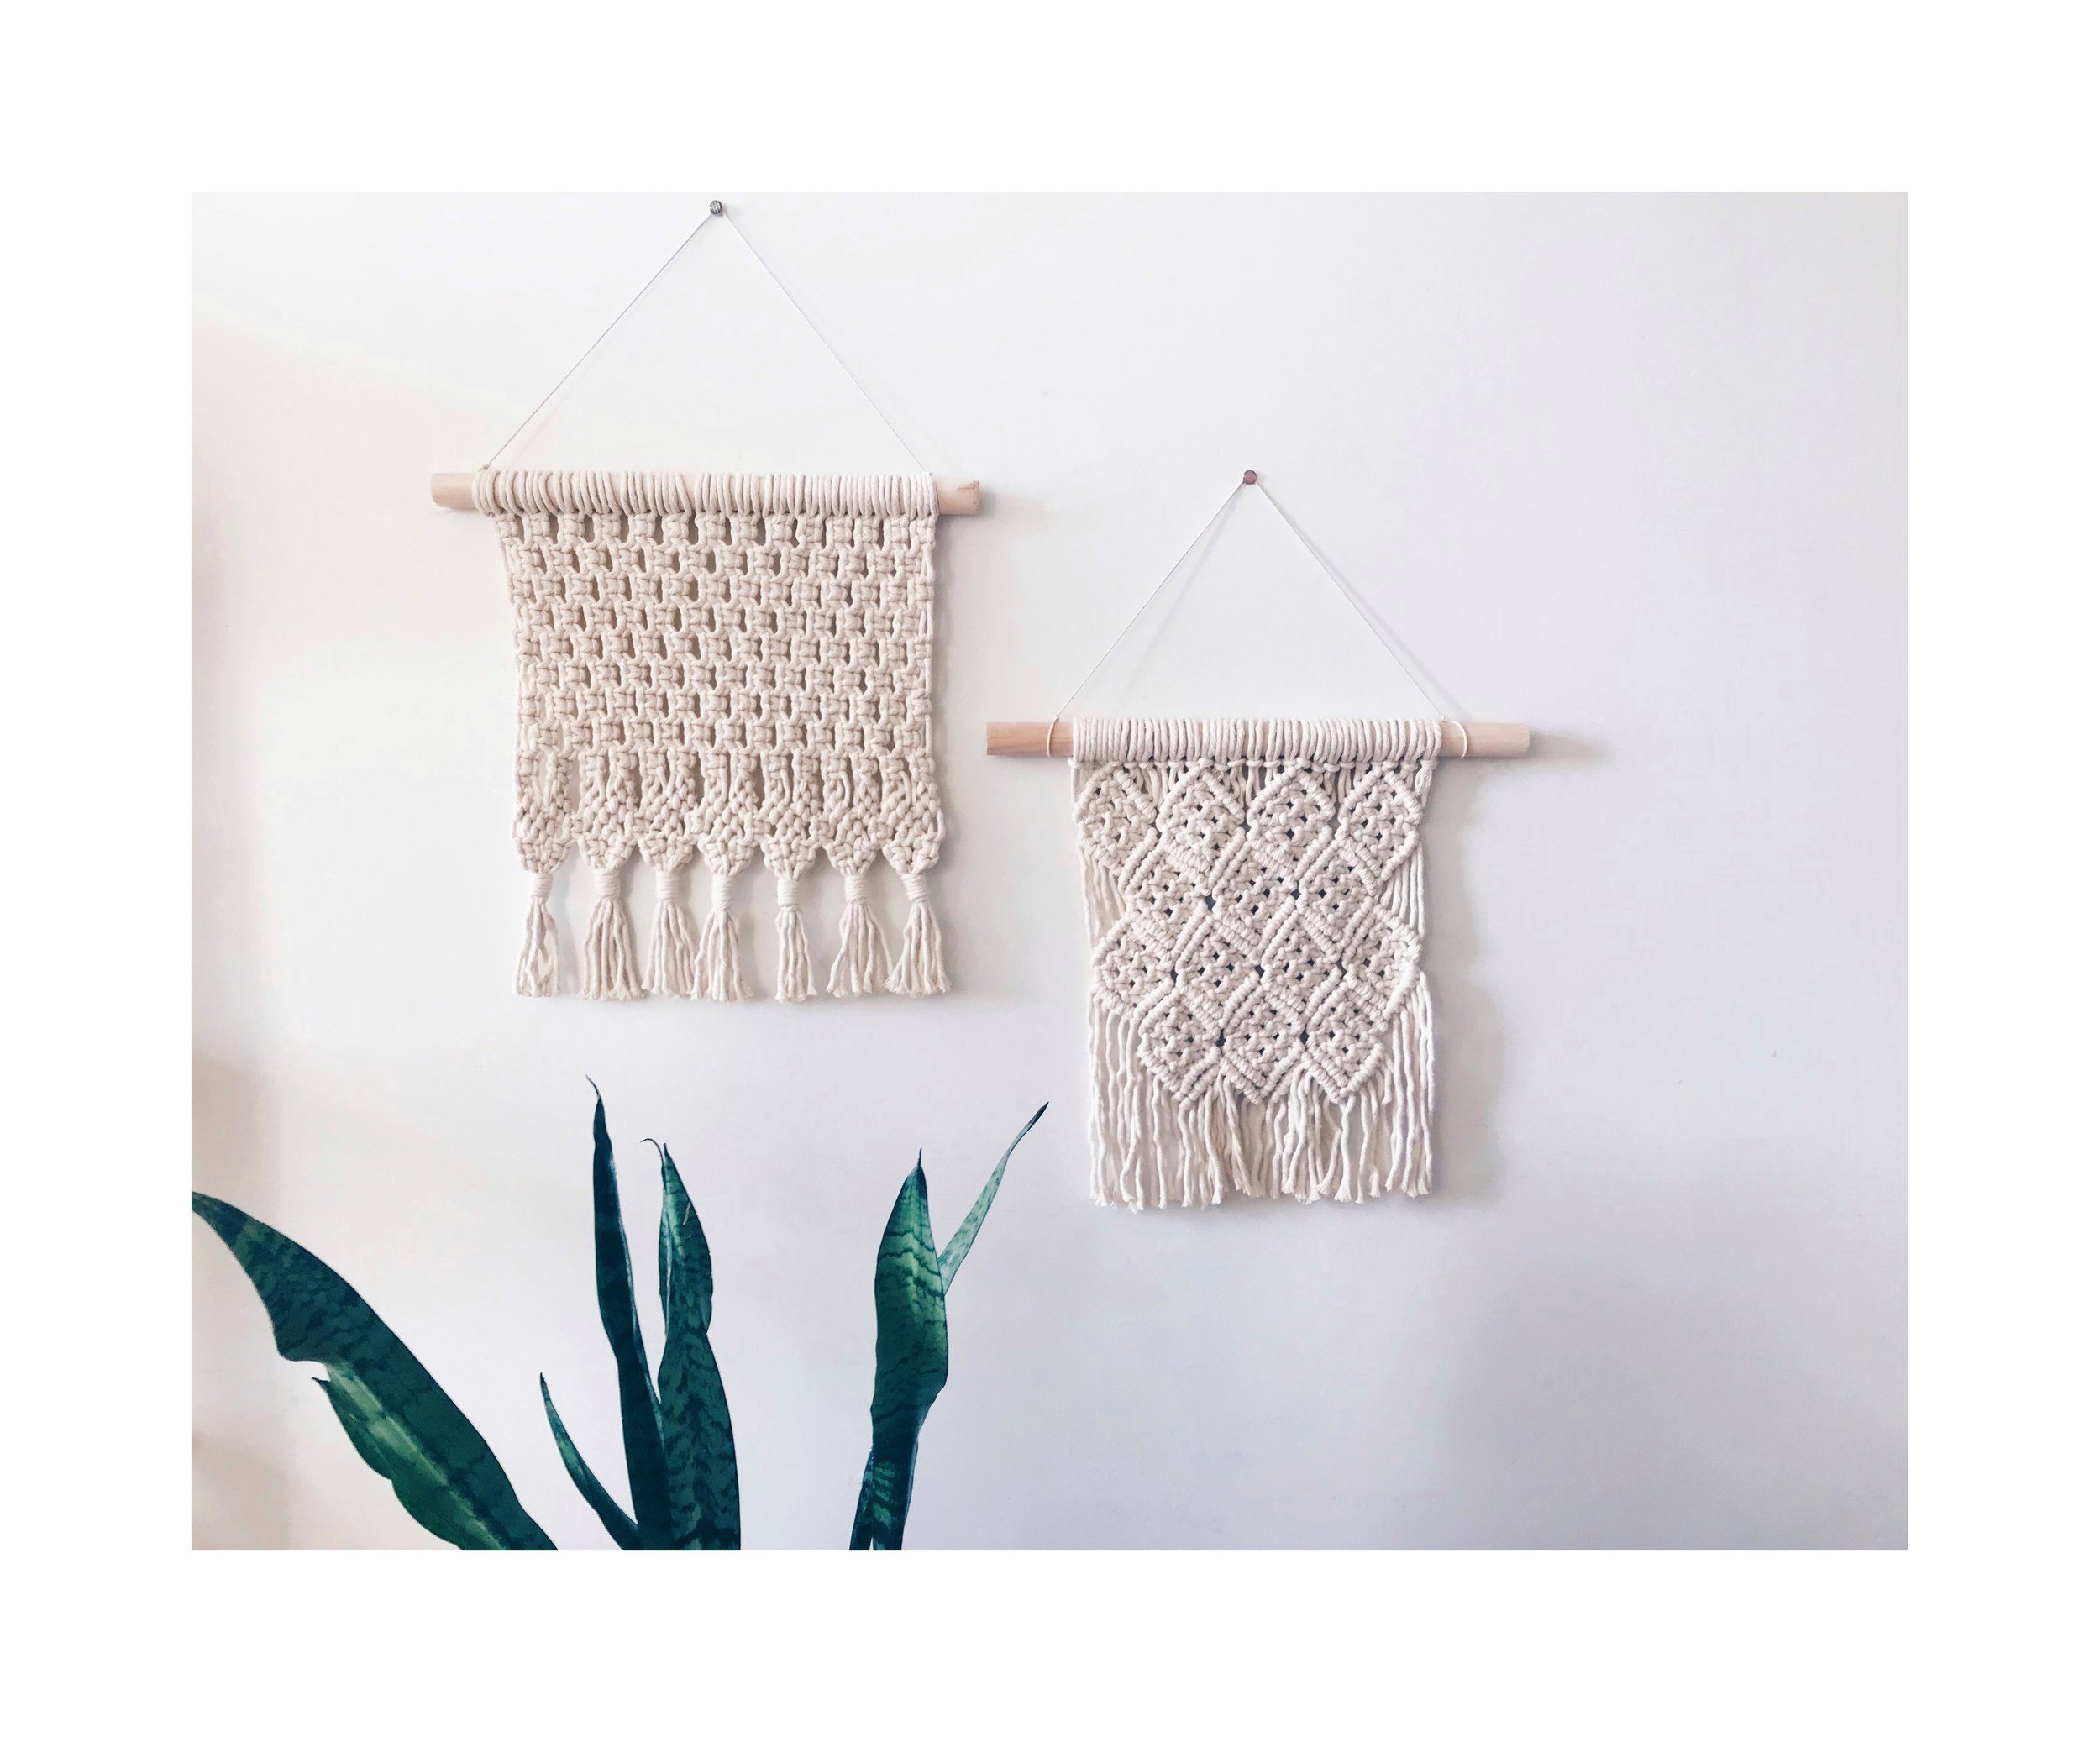 Macrame Wall Hanging Photo (1).JPG